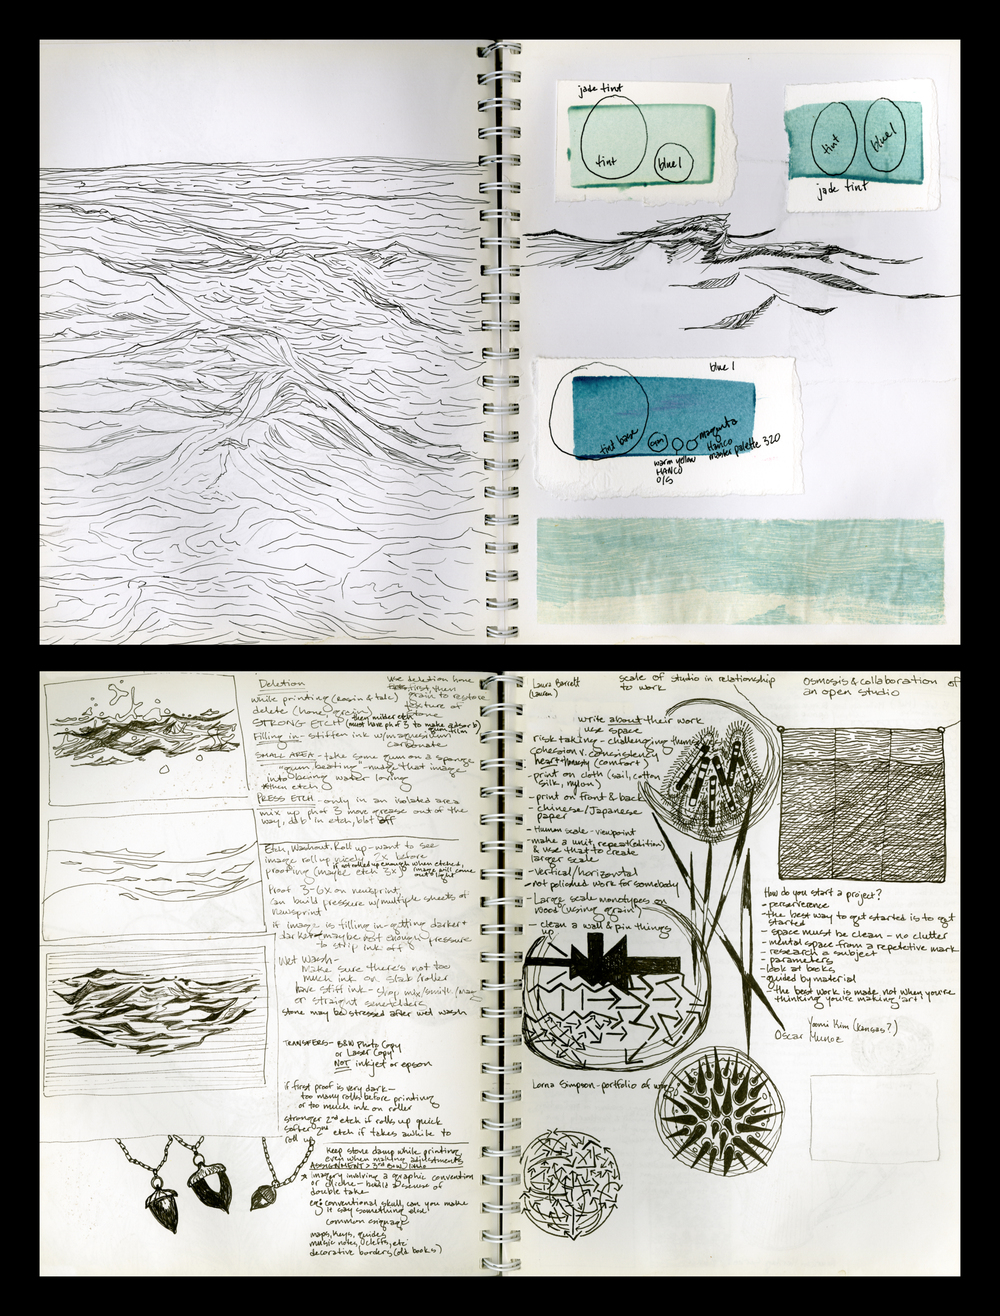 Atlantic Ocean Drawings, Studio Research // 2012-2013